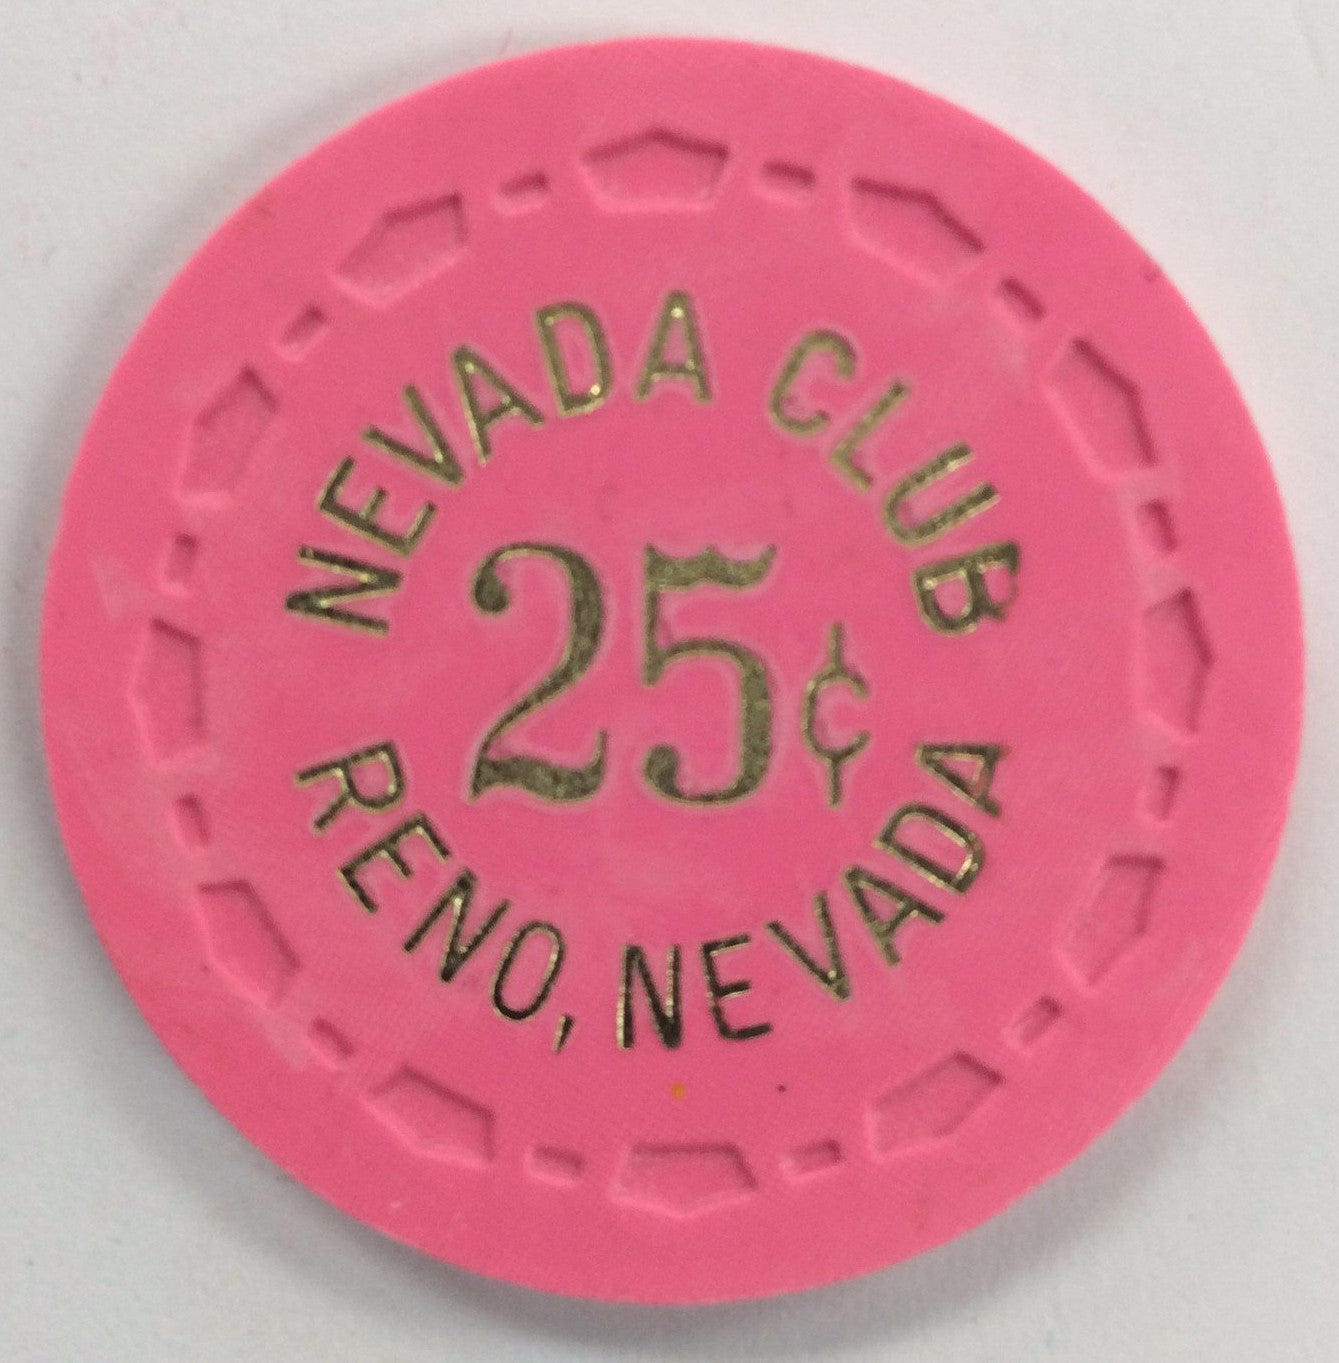 Nevada Club 25cent (pink) chip - Spinettis Gaming